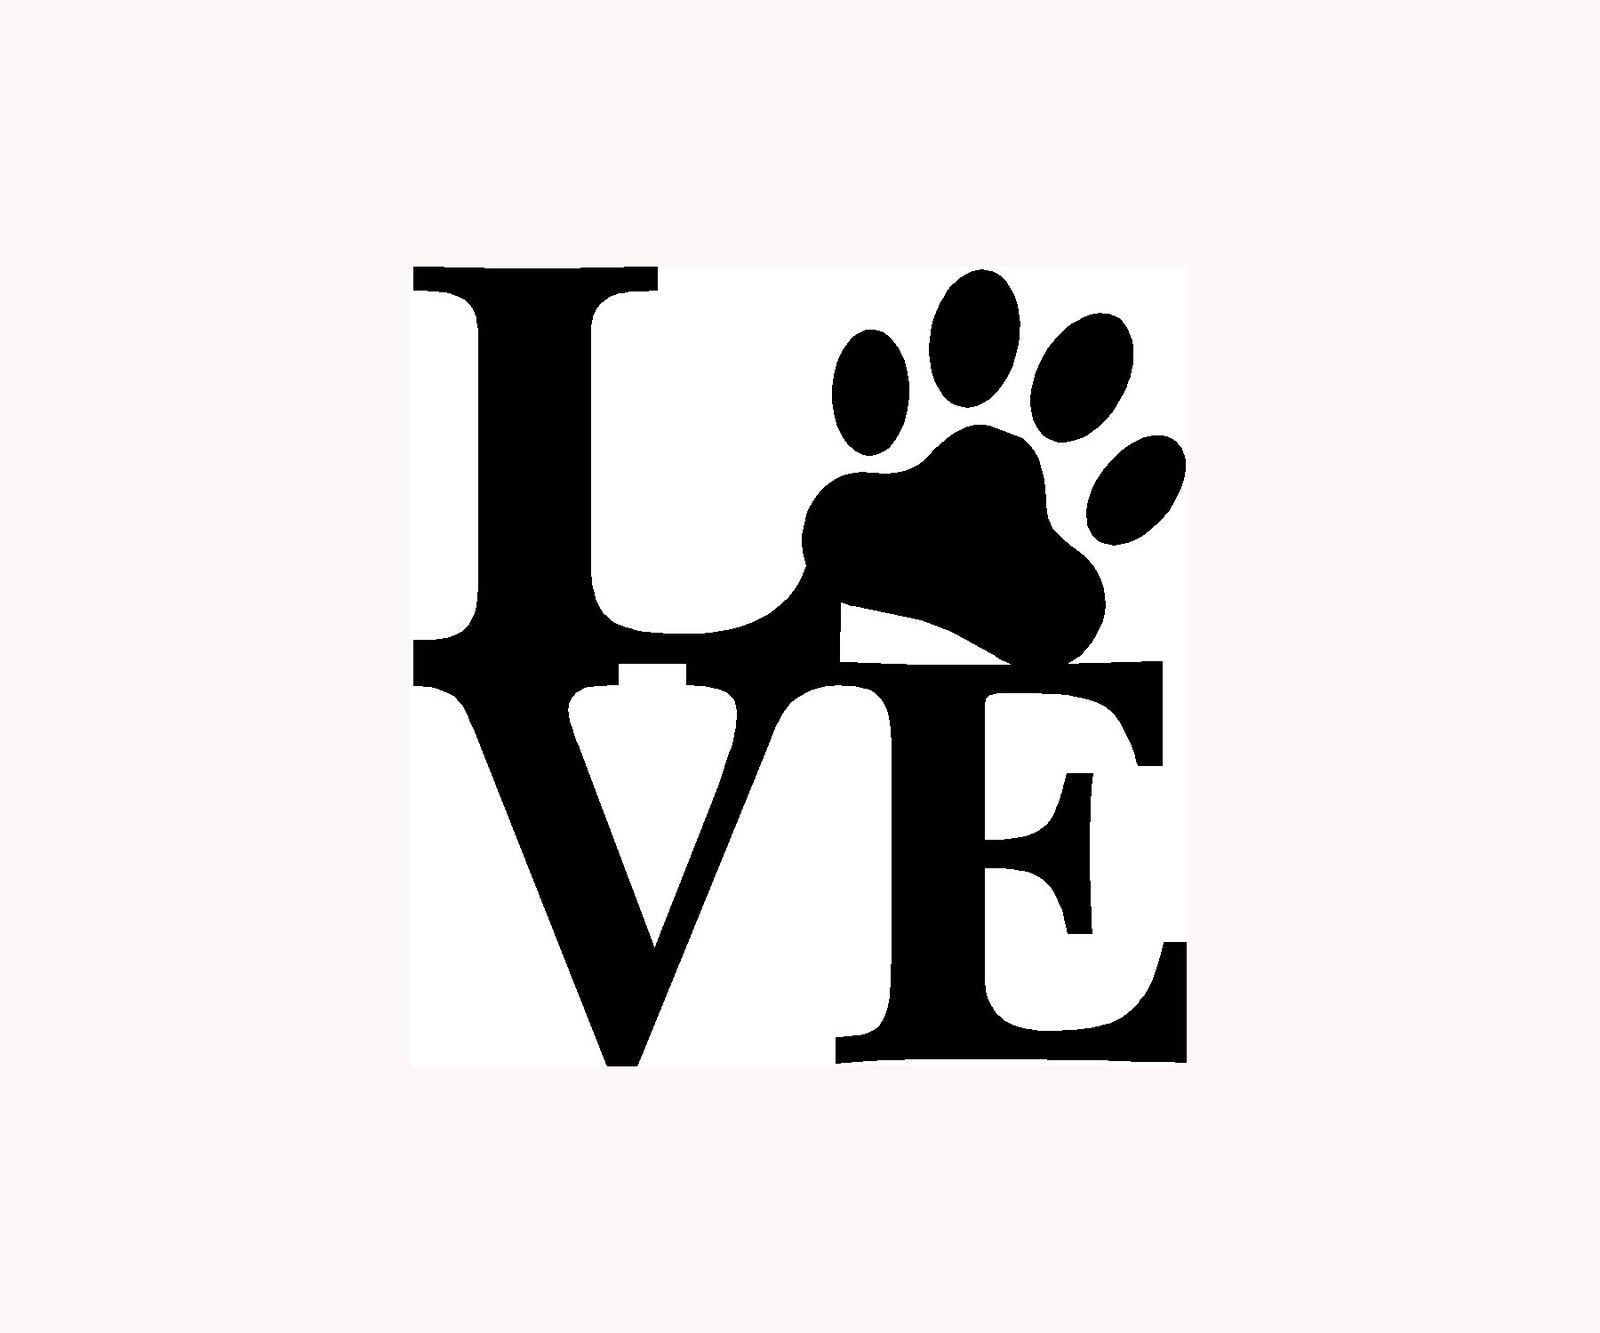 LOVE PAW Sticker Family Car Window Vinyl Decal Cute Animal Pet Dog - Cat custom vinyl decals for car windows